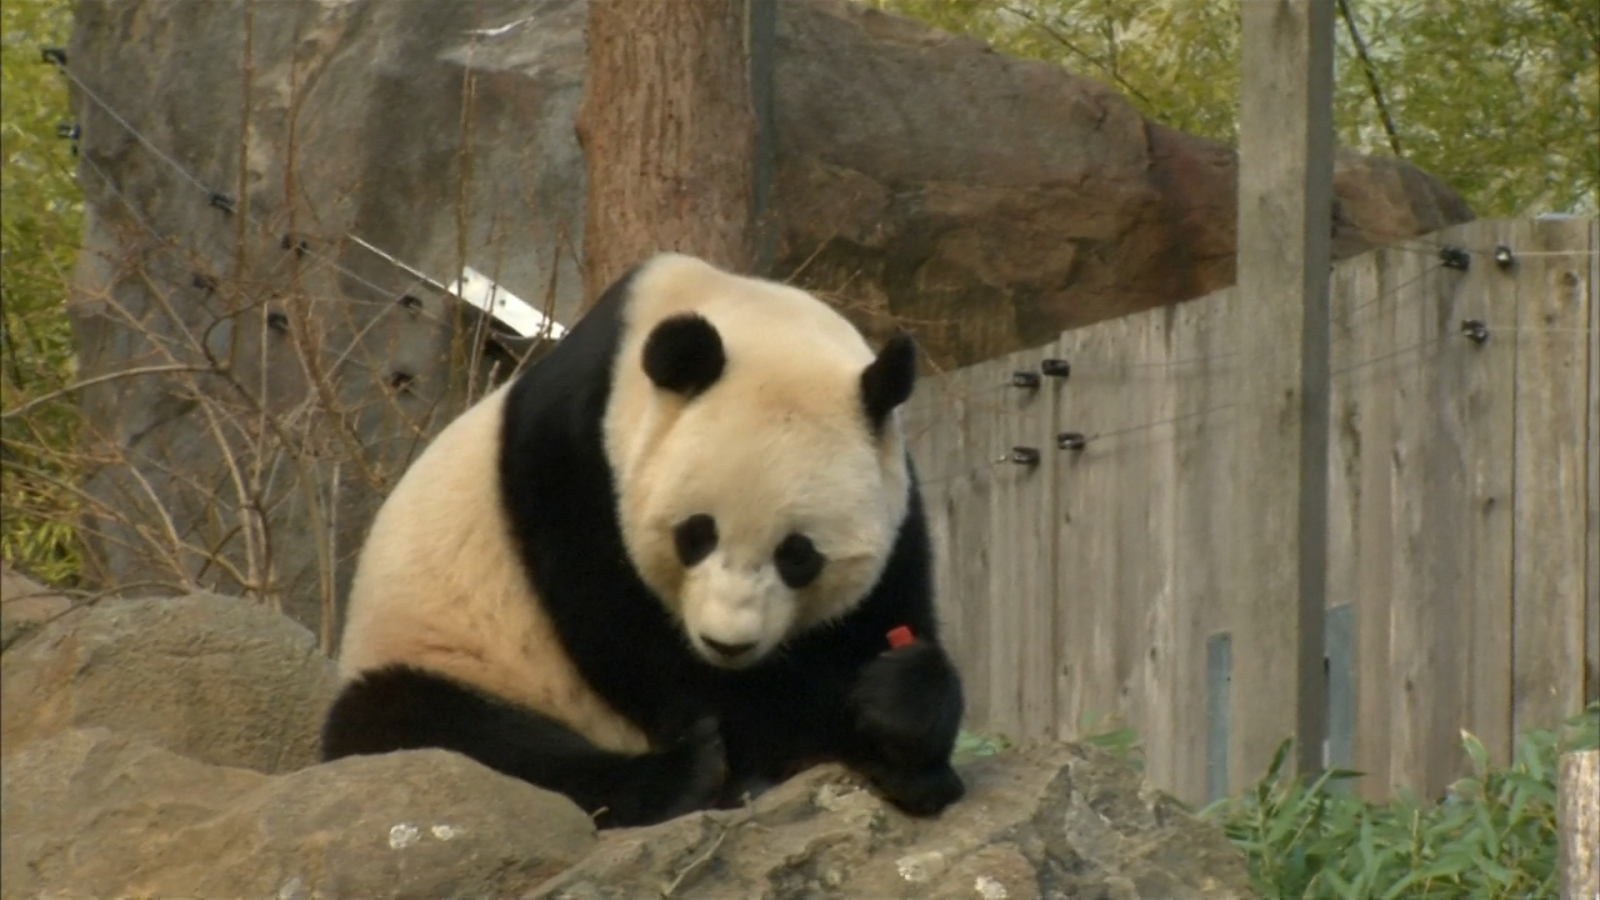 Giant panda Bao Bao heads to new home in China